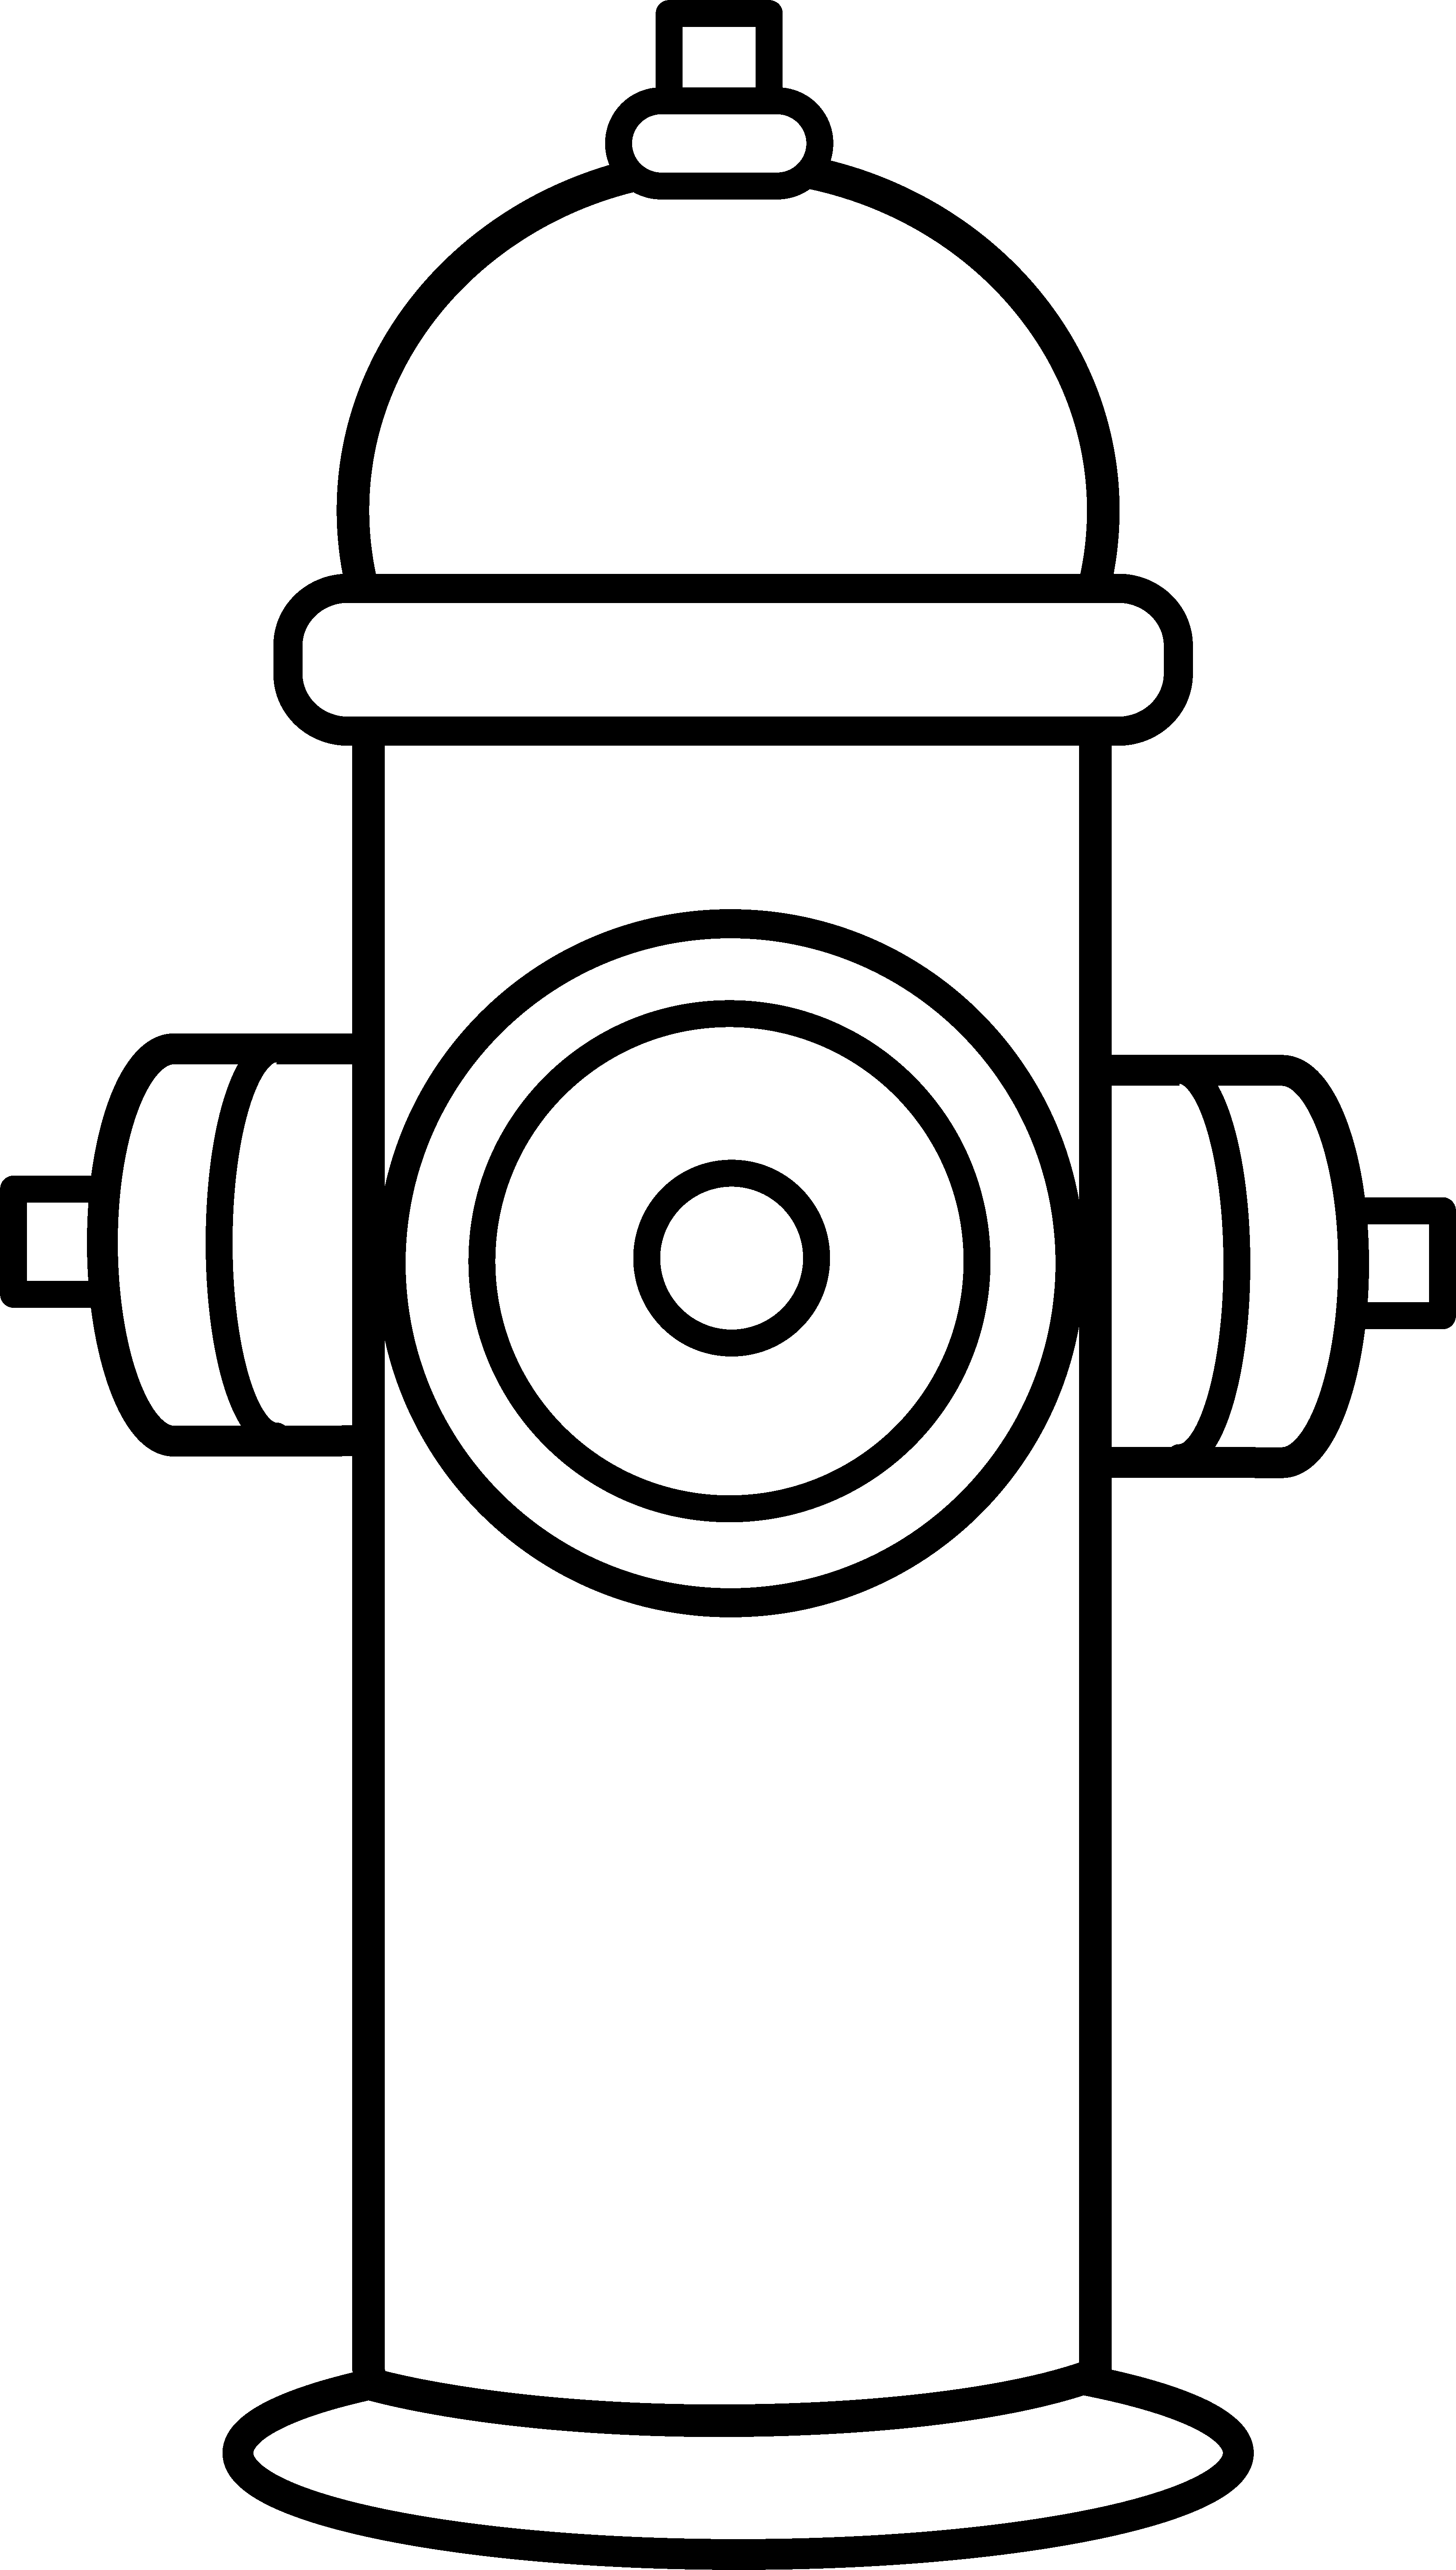 fire hydrant coloring pages fire hydrant coloring page coloring home coloring fire hydrant pages